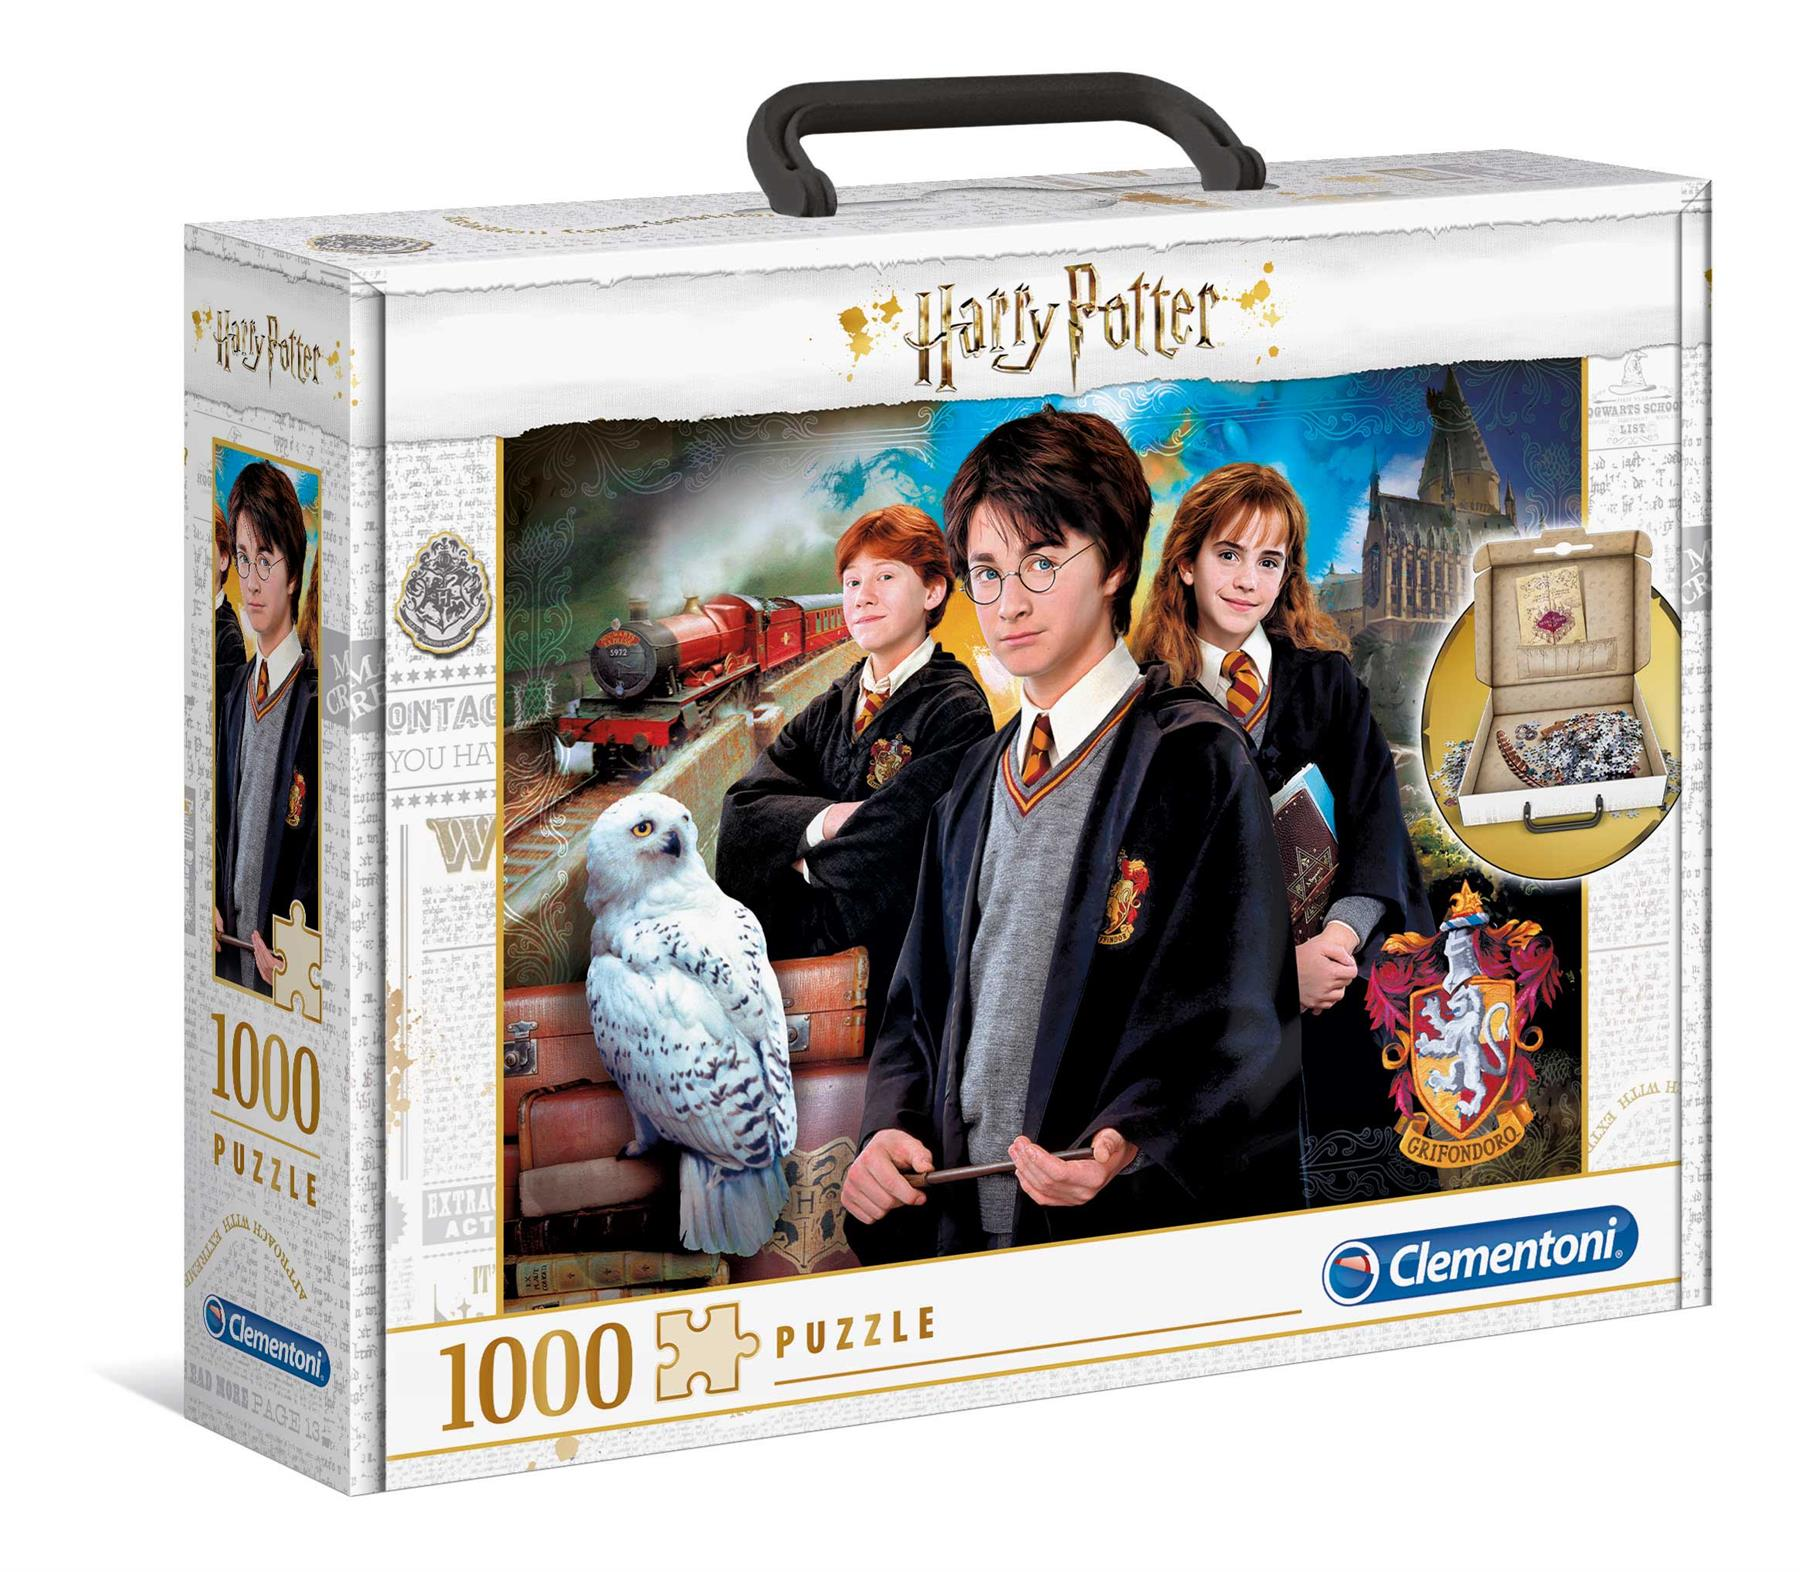 Clementoni Harry Potter Jigsaw Puzzle in Carry Box (1000 Pieces)